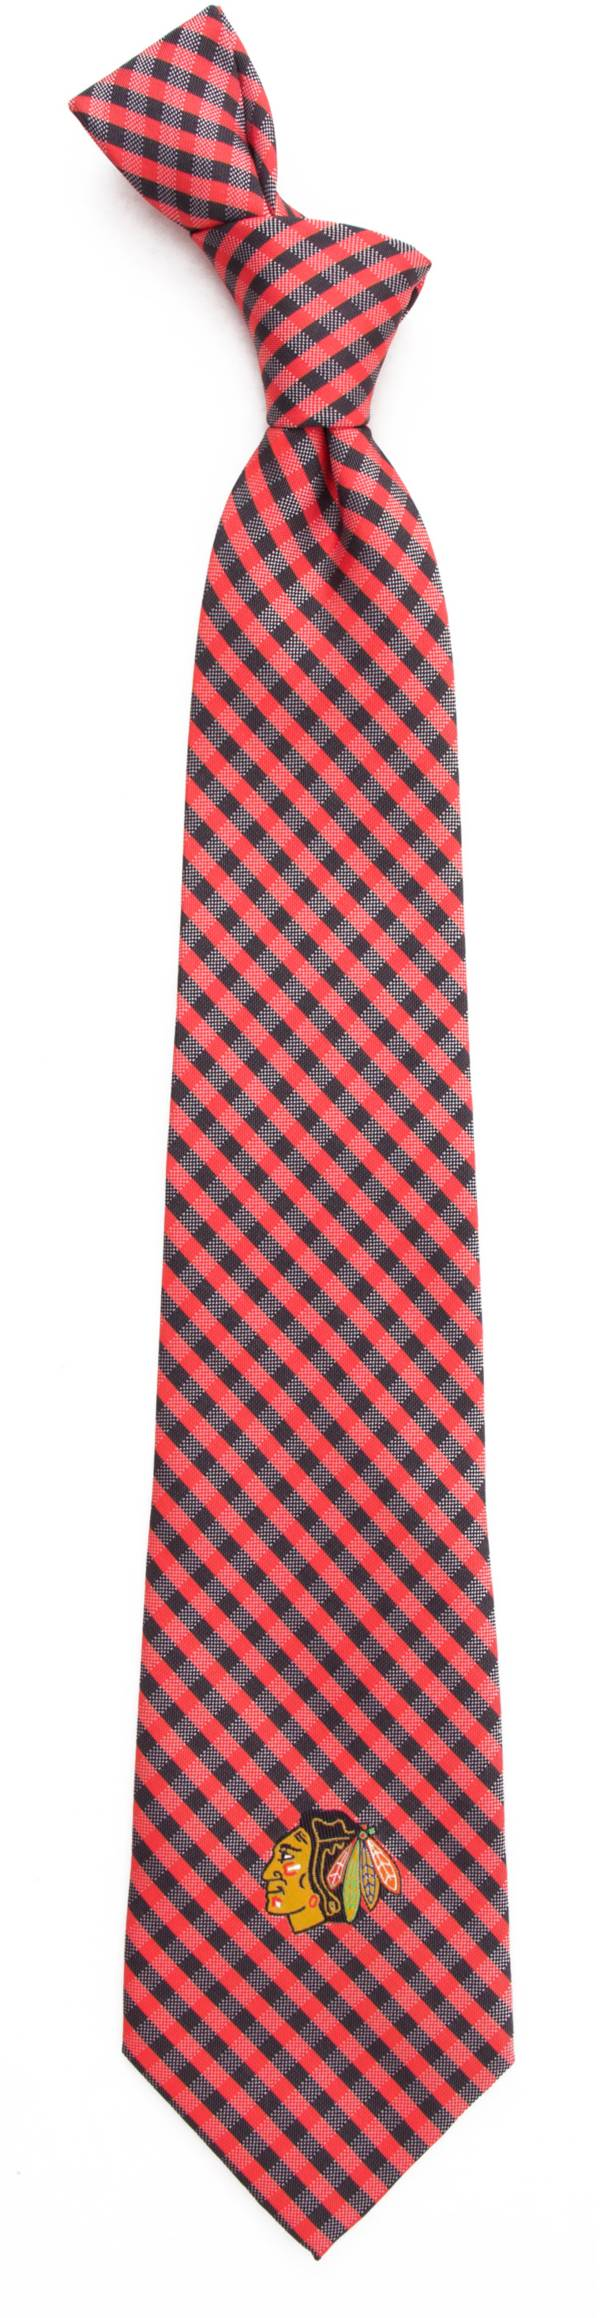 Eagles Wings Chicago Blackhawks Gingham Necktie product image